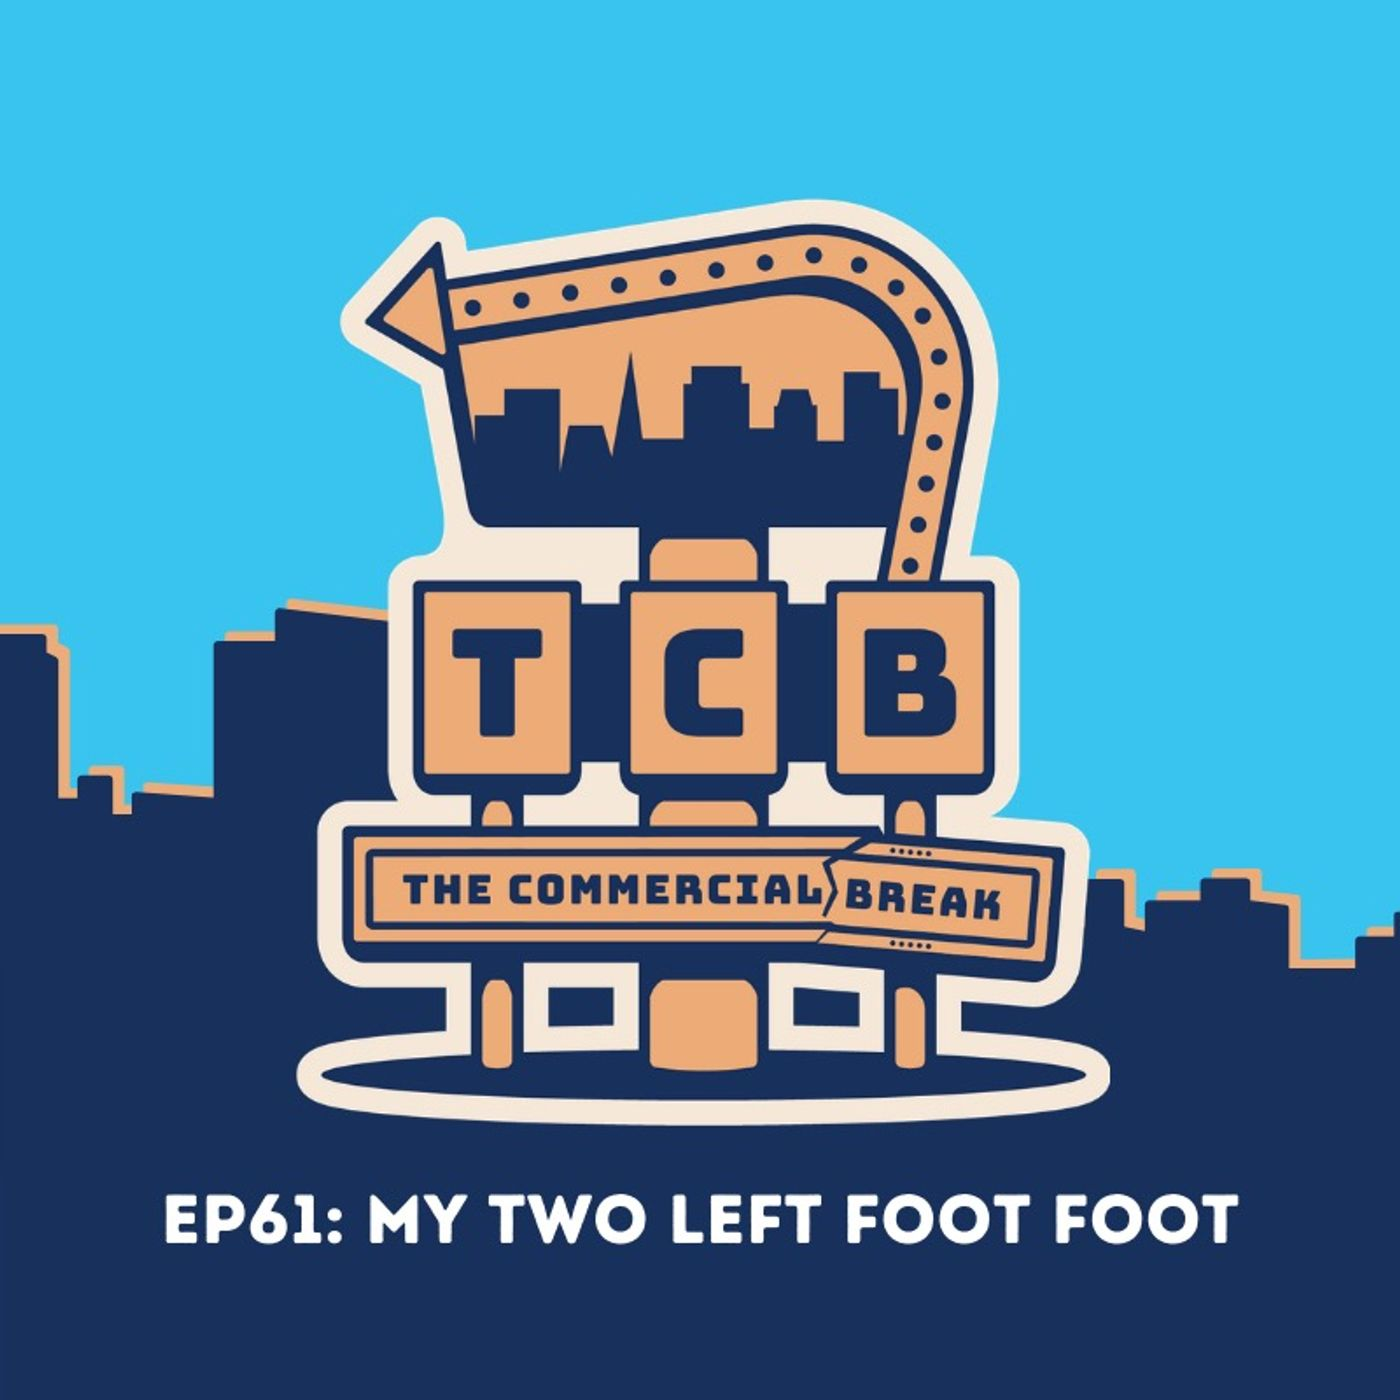 EP61: My Two Left Foot Foot